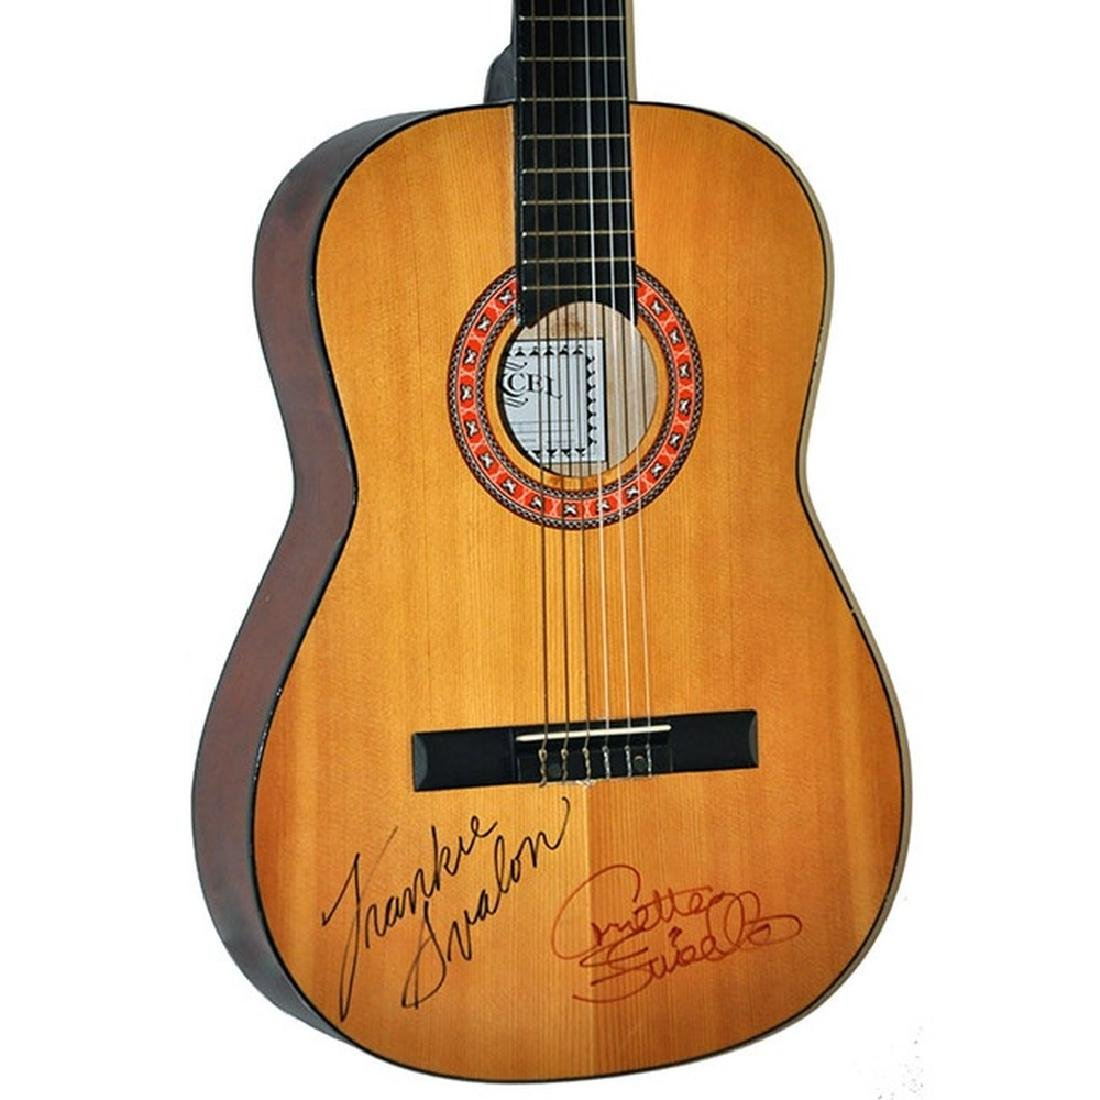 Frankie Avalon & Annette Funicello Signed Guitar